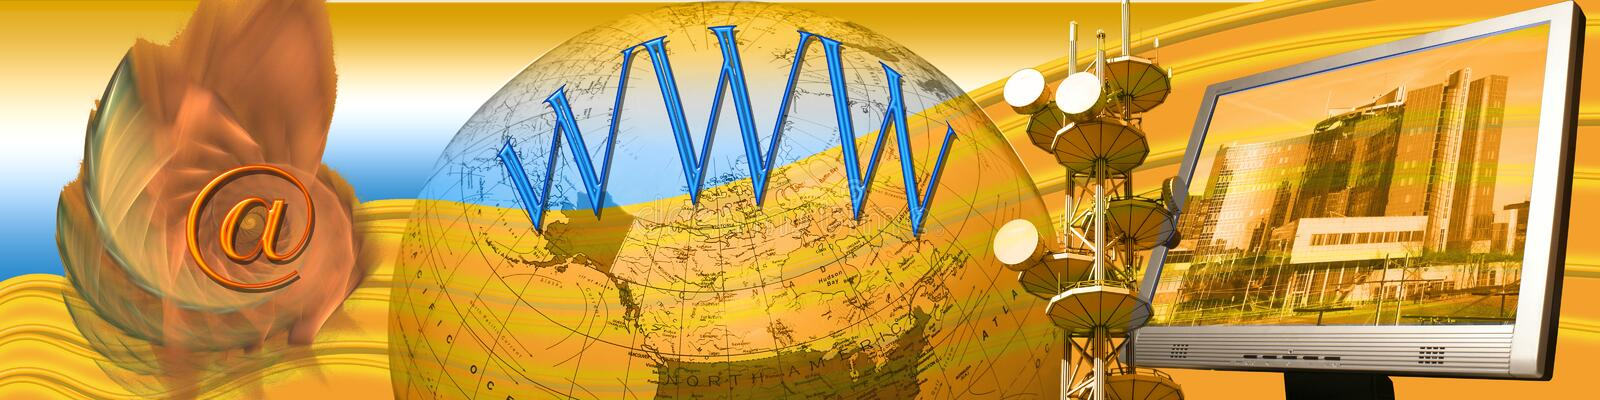 Header: E-commerce and world wide connections II vector illustration